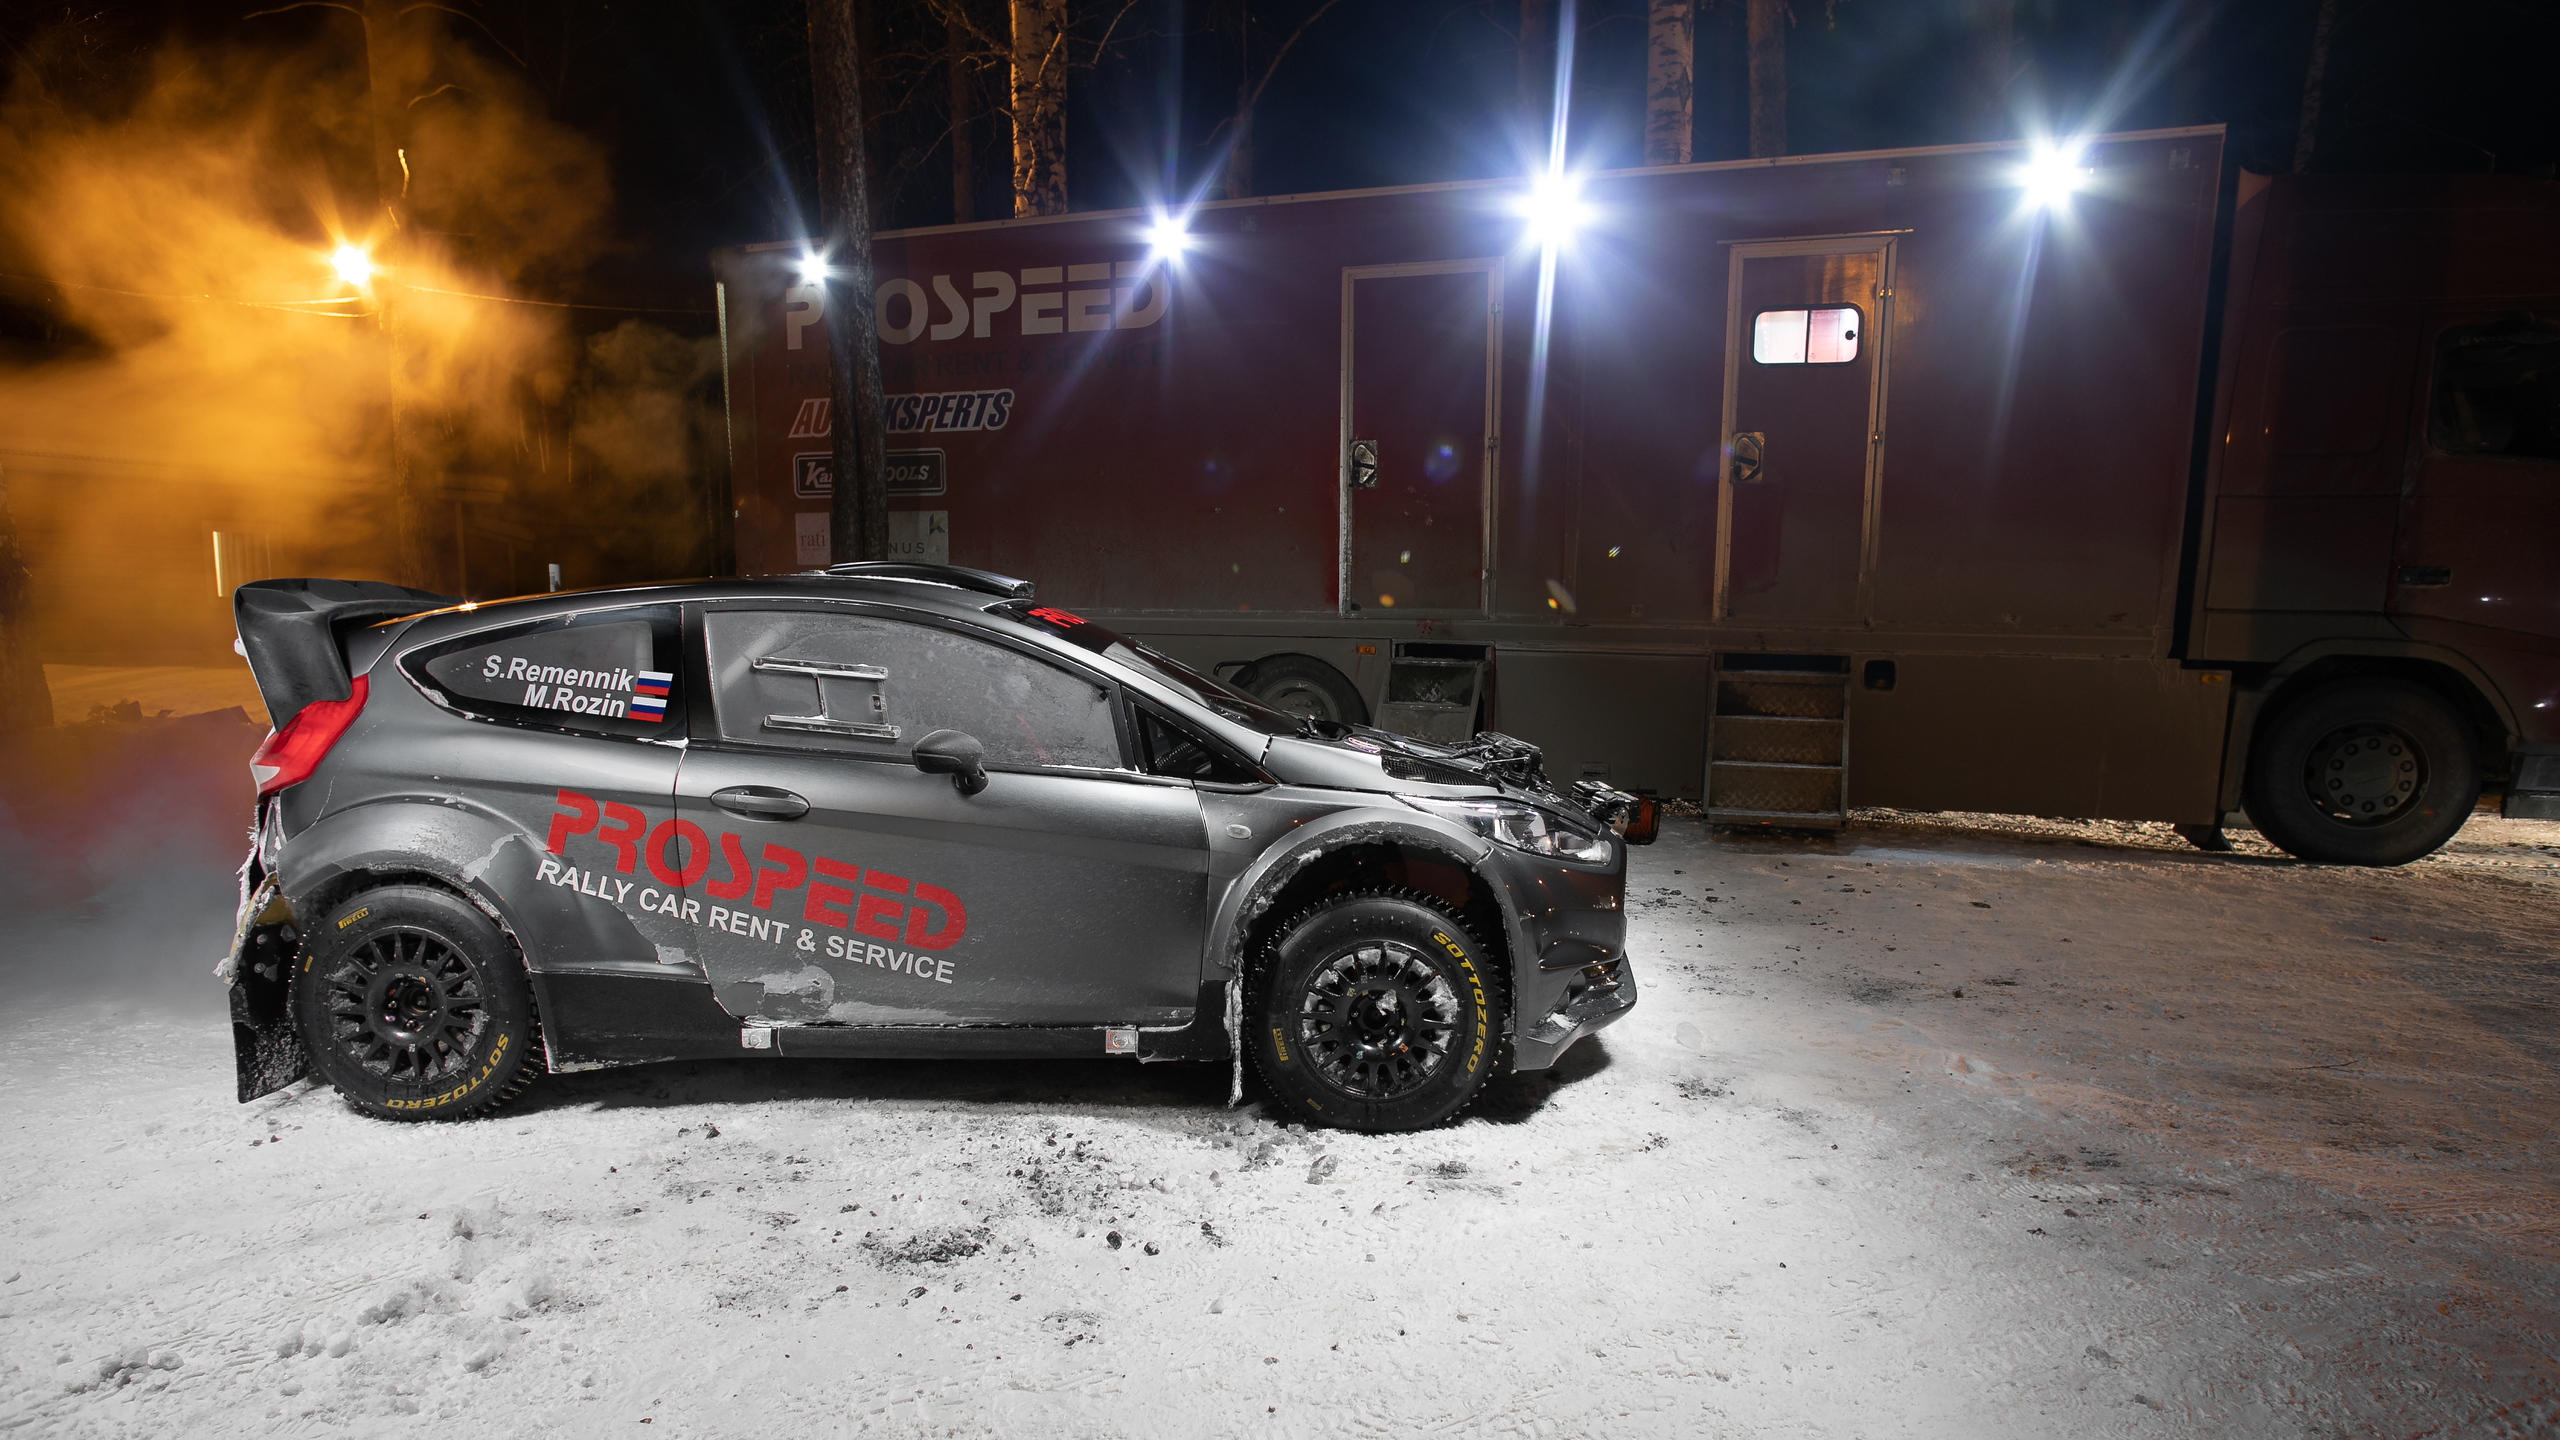 Winter tale in a malachite forest: Sergei Remennik and Mark Rozin start at the fifth round of Russian Rally Cup